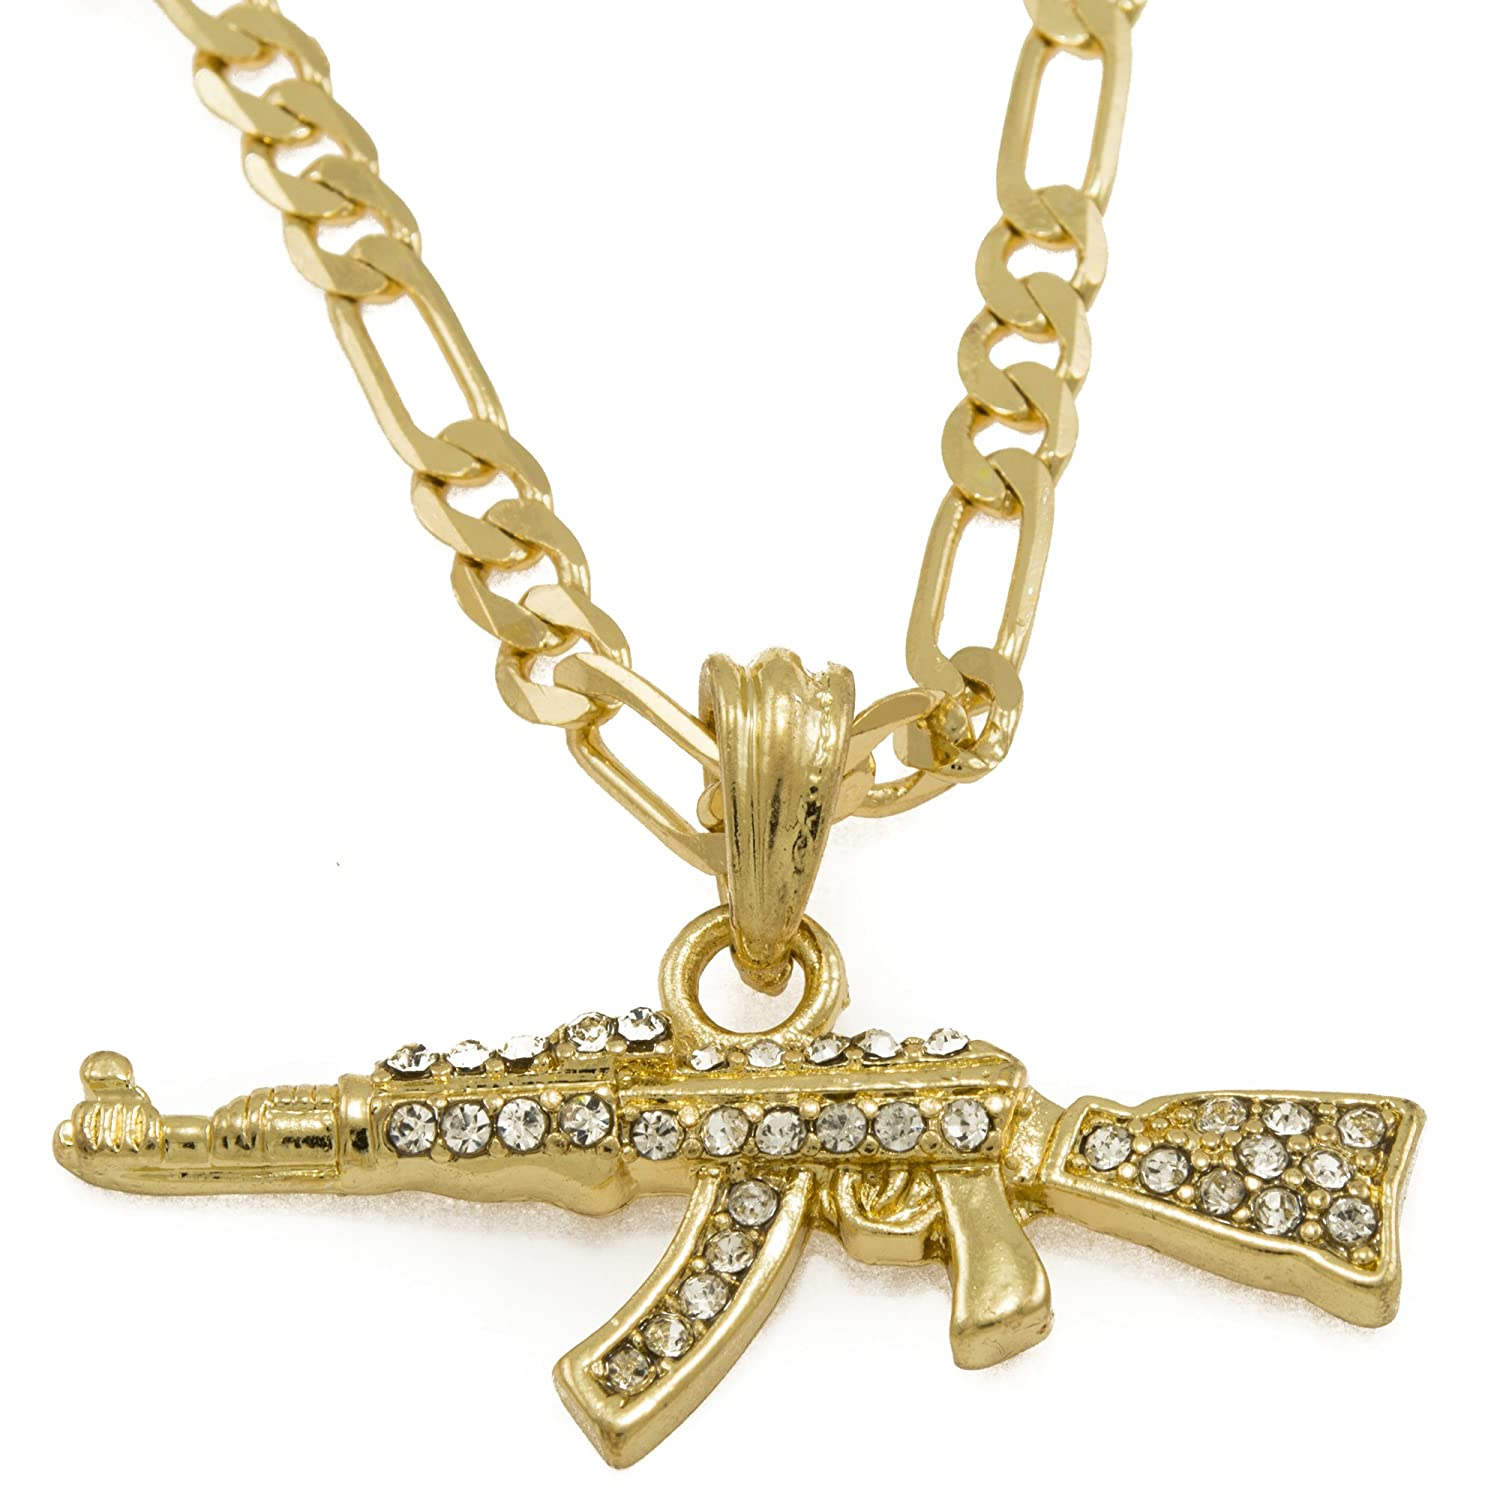 b gold index necklaces pendant val chain